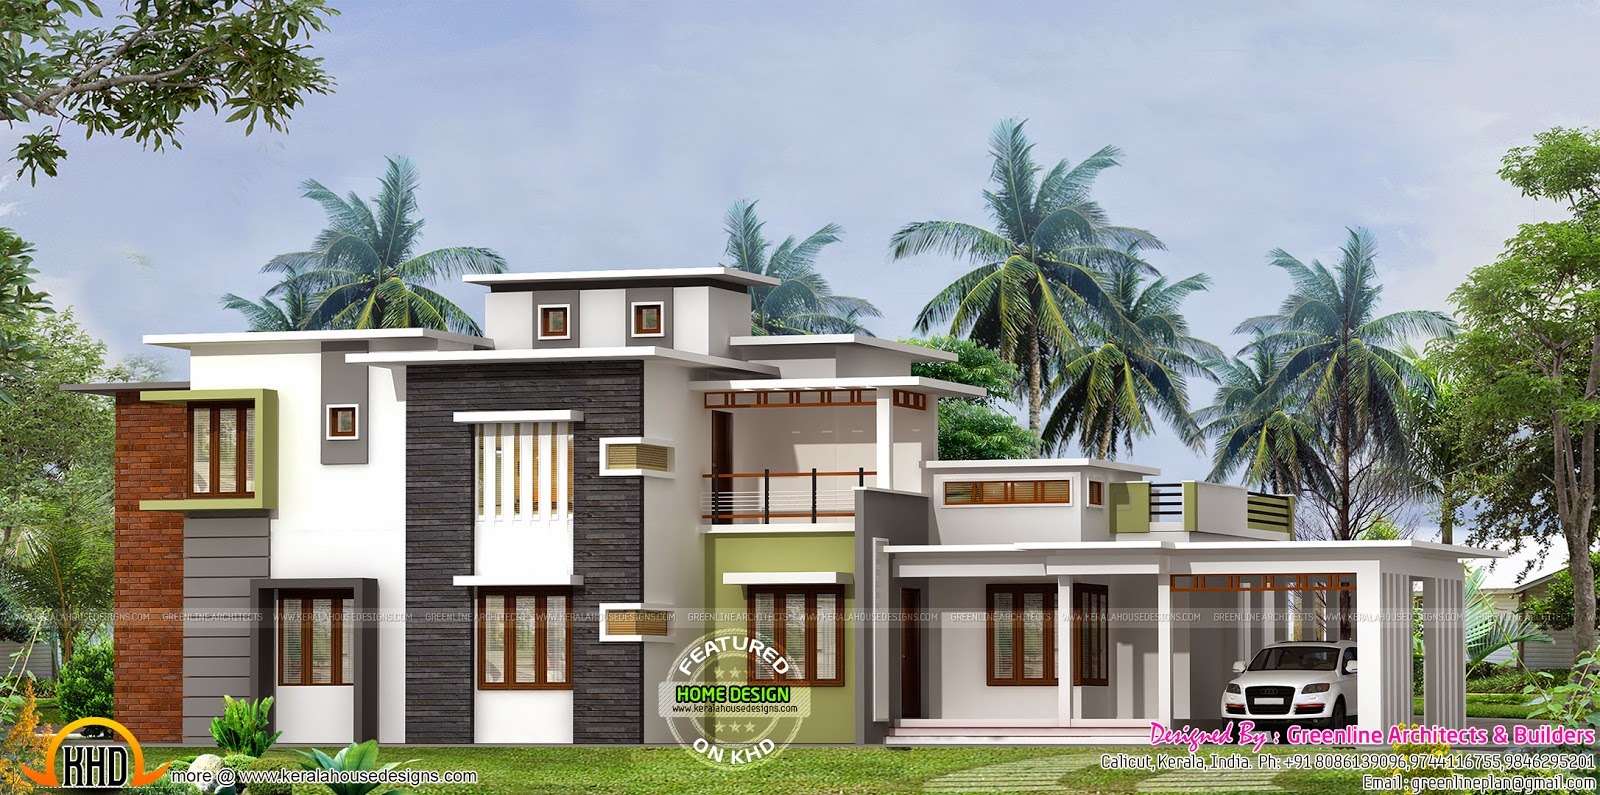 Absolute flat roof house kerala home design and floor plans for Flat roof house plans kerala